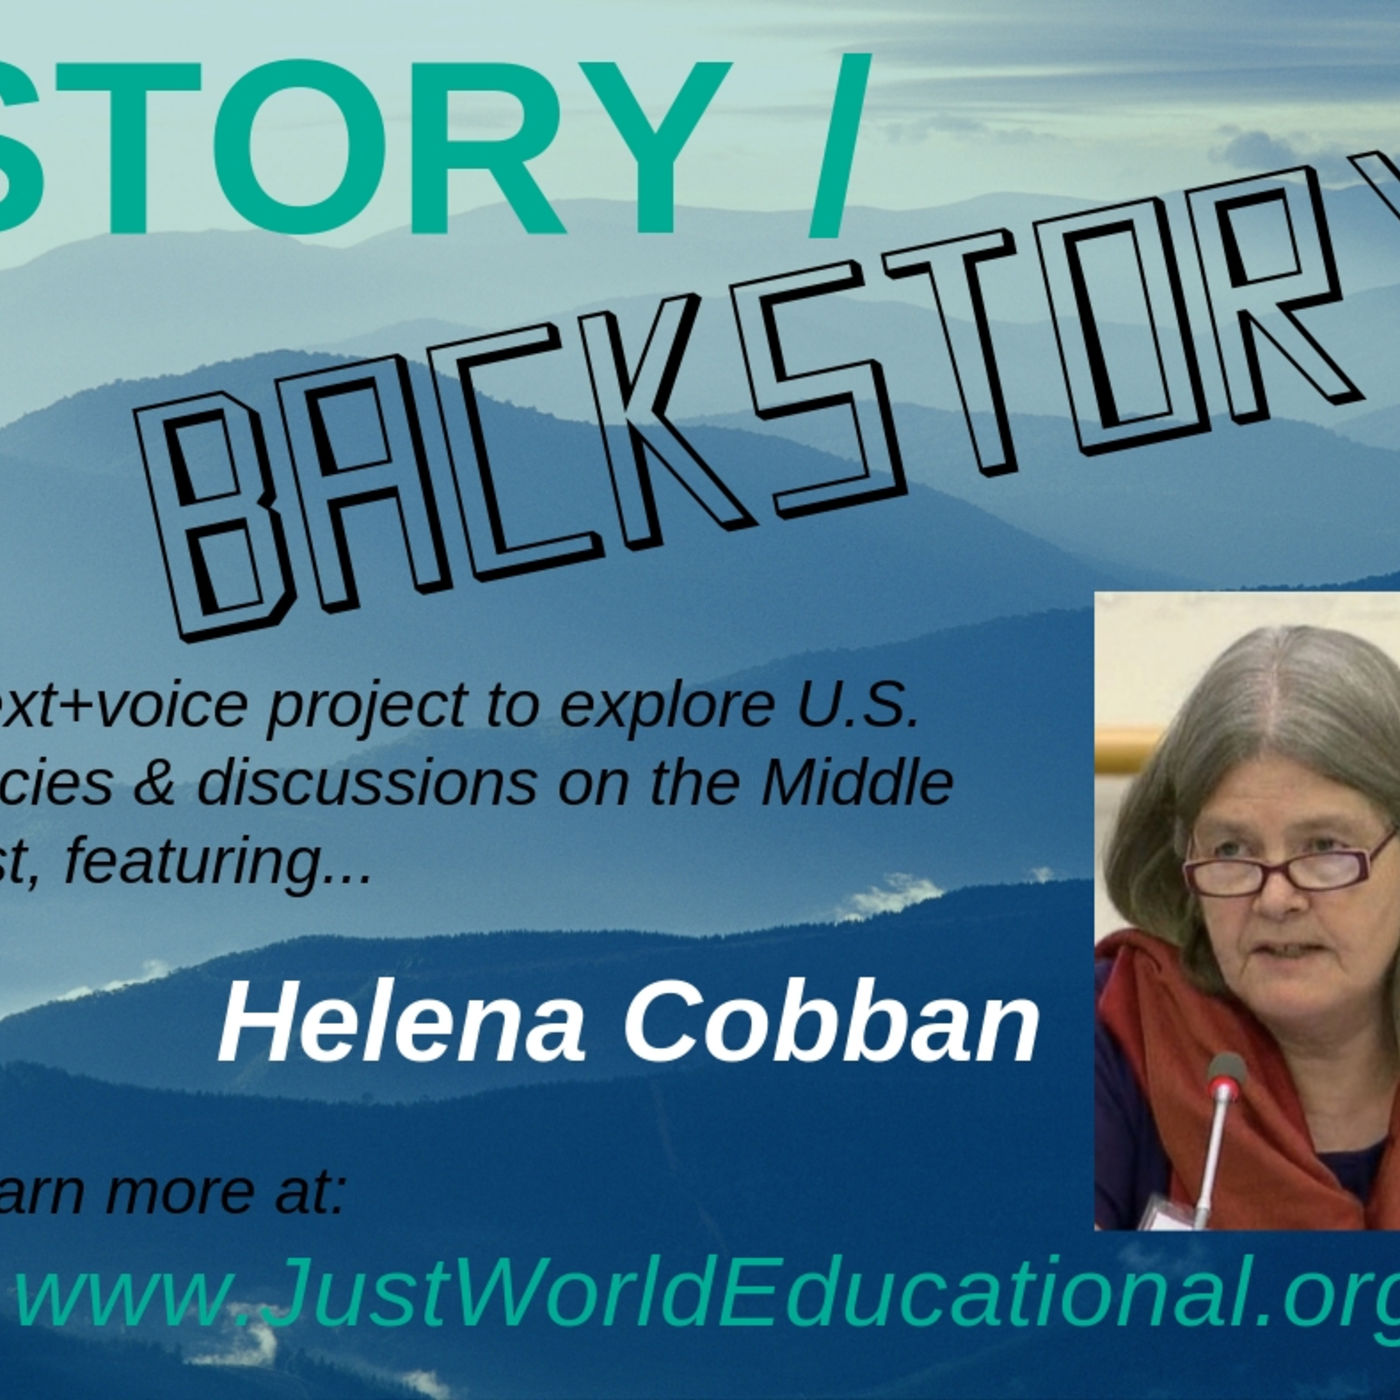 Story-Backstory ep. 13: Bolton: pushing the United States into a war against Iran?